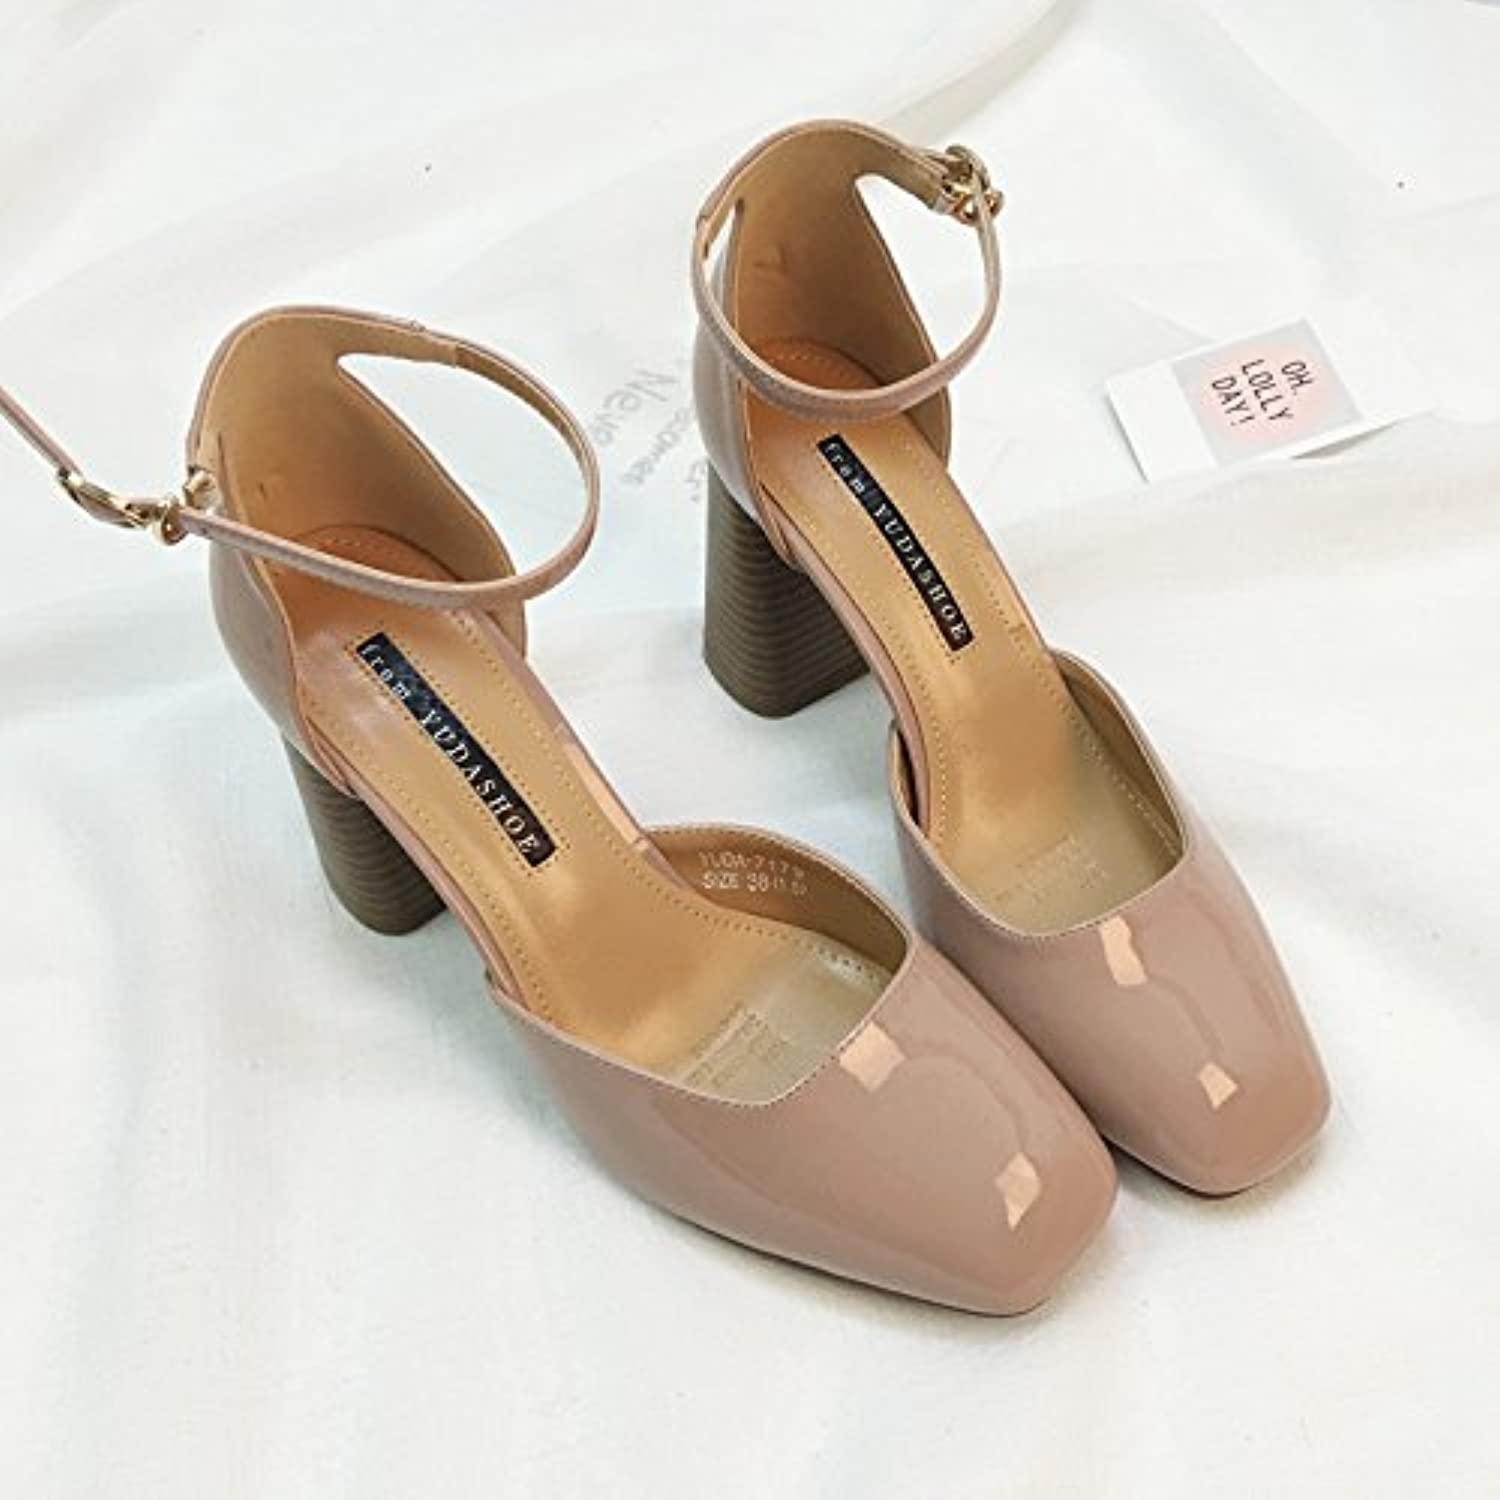 SHOESHAOGE One Word Buckle Heel Heels Spring Female Shallow Mouth Patent Bare Powder Square Head Shoes Femaleö